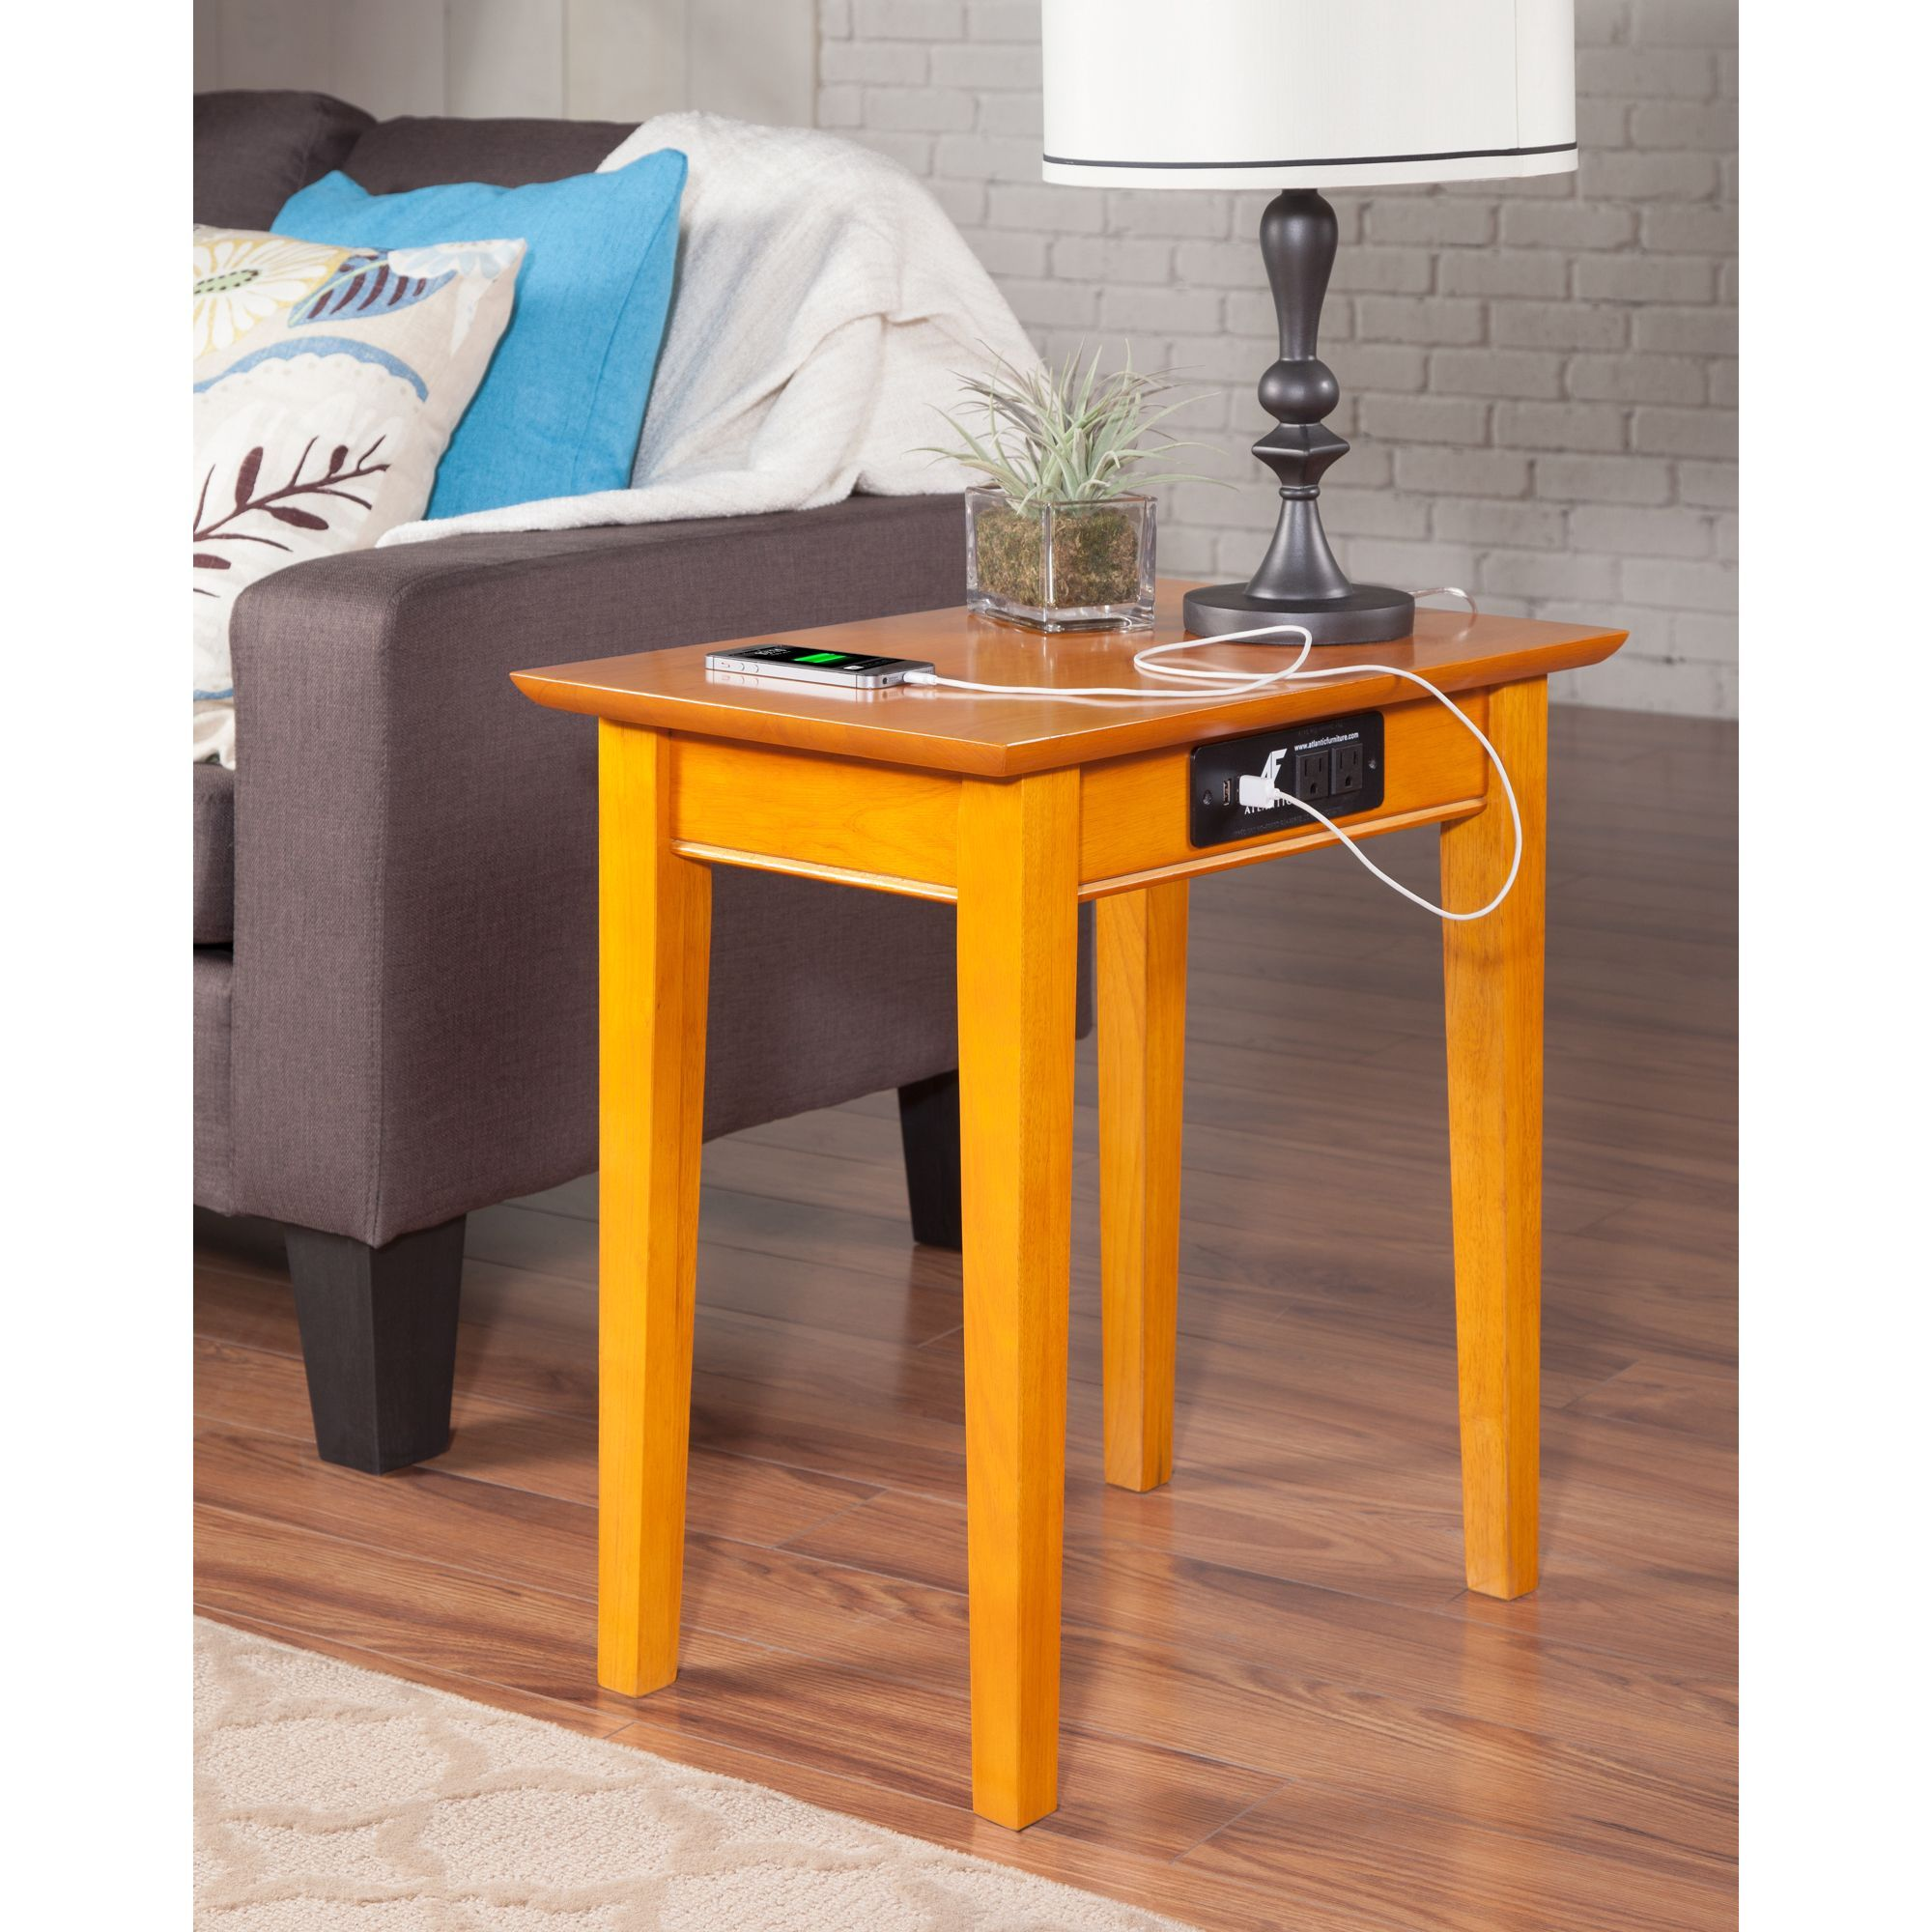 device charging end table for the home tables furniture accent with station oversized coffee half moon mirrored console glass contemporary round cloth gold mirror tiny spaces